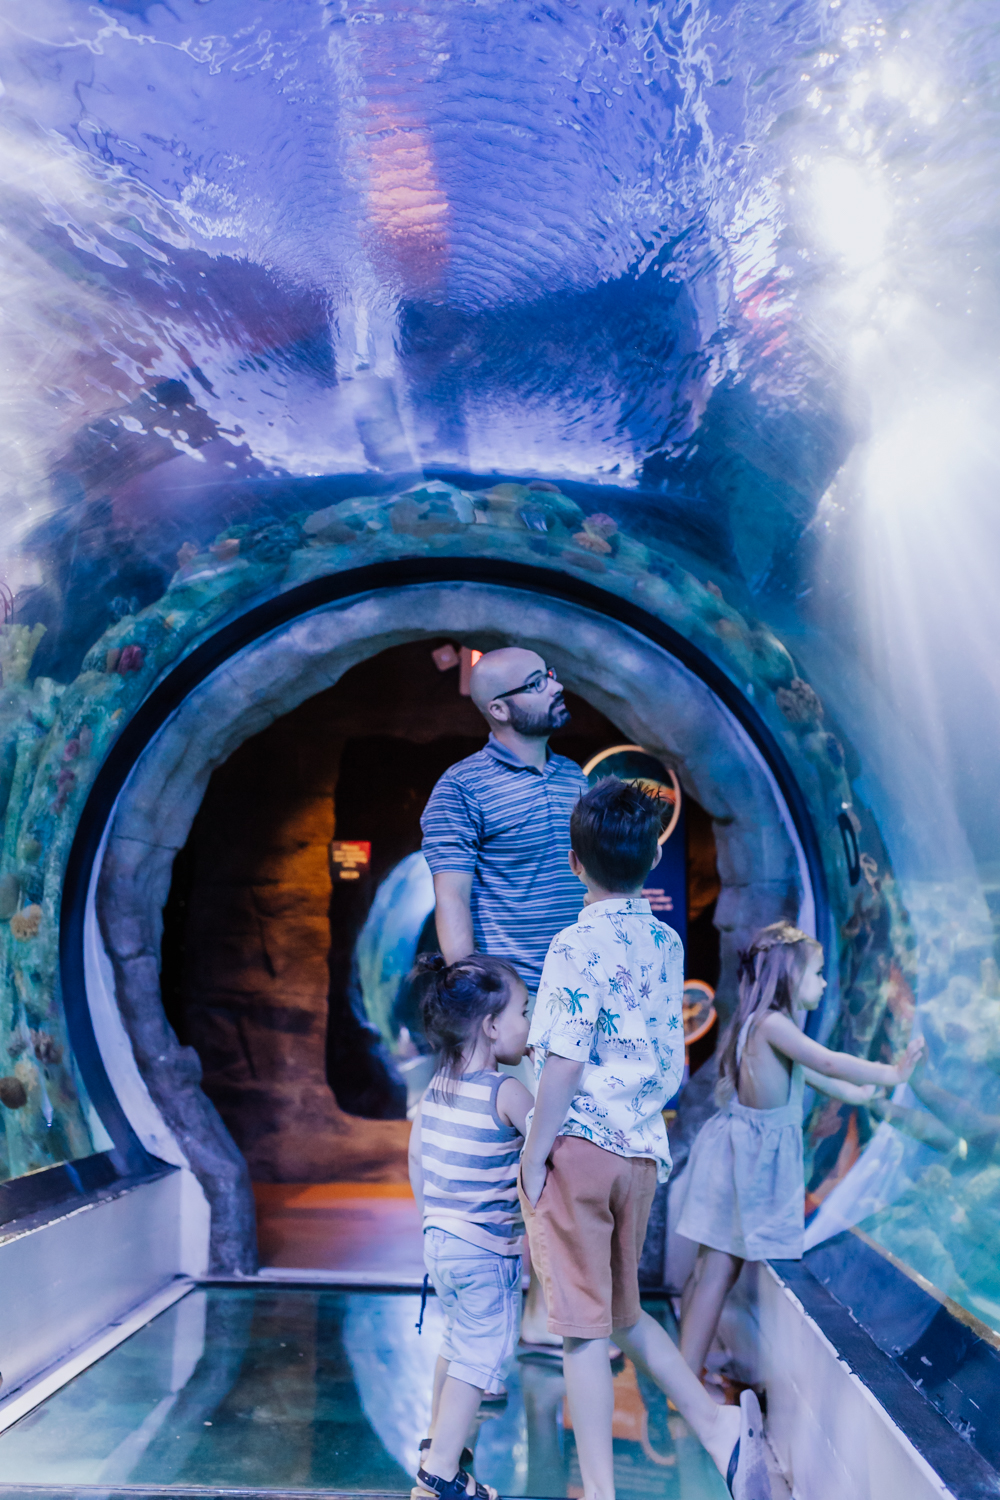 the 360 degree tunnel at SEA LIFE Aquarium Arizona | thelovedesignedlife.com #sealife #aquariumviews